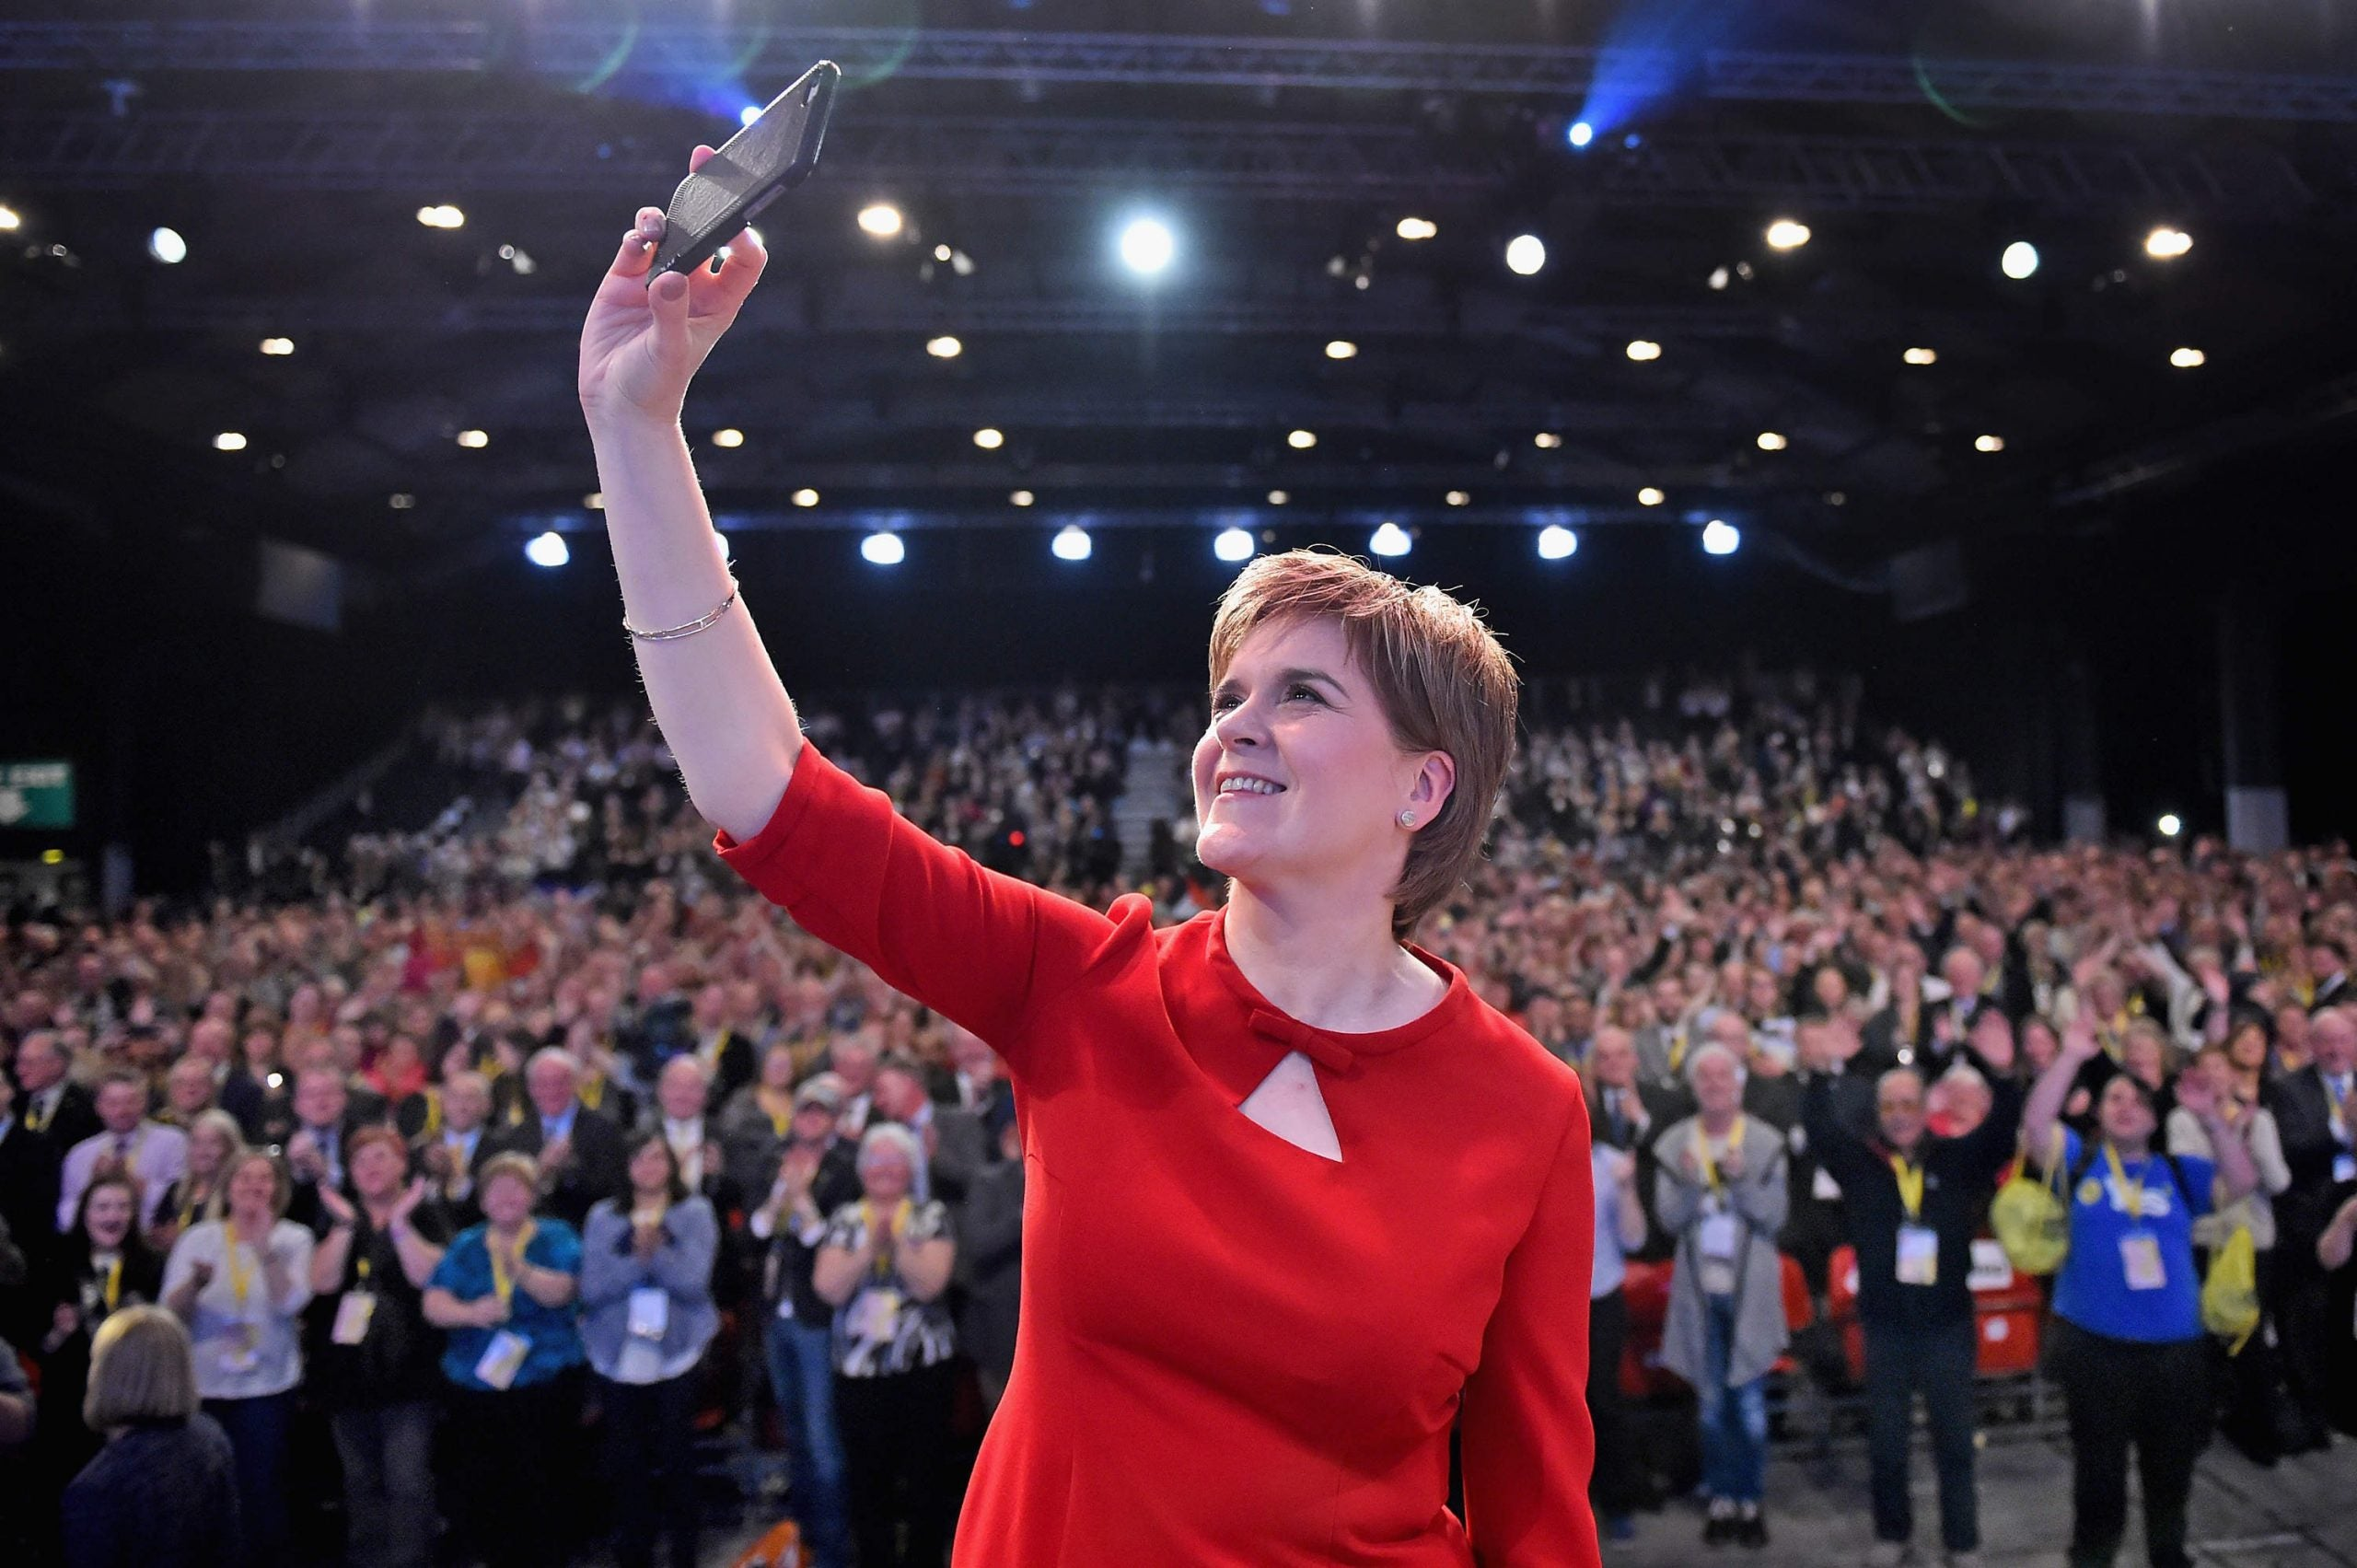 When it comes to Brexit, Nicola Sturgeon has overplayed her hand